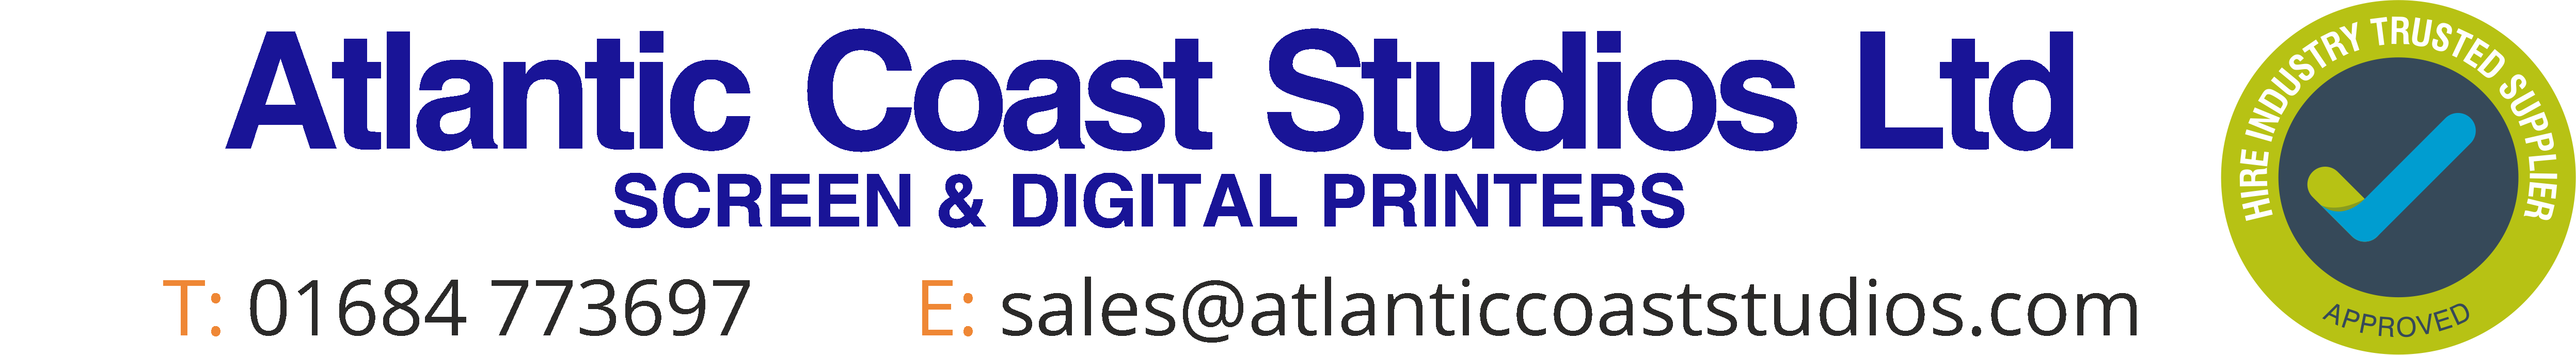 Atlantic Coast Studios Screen and Digital Printers